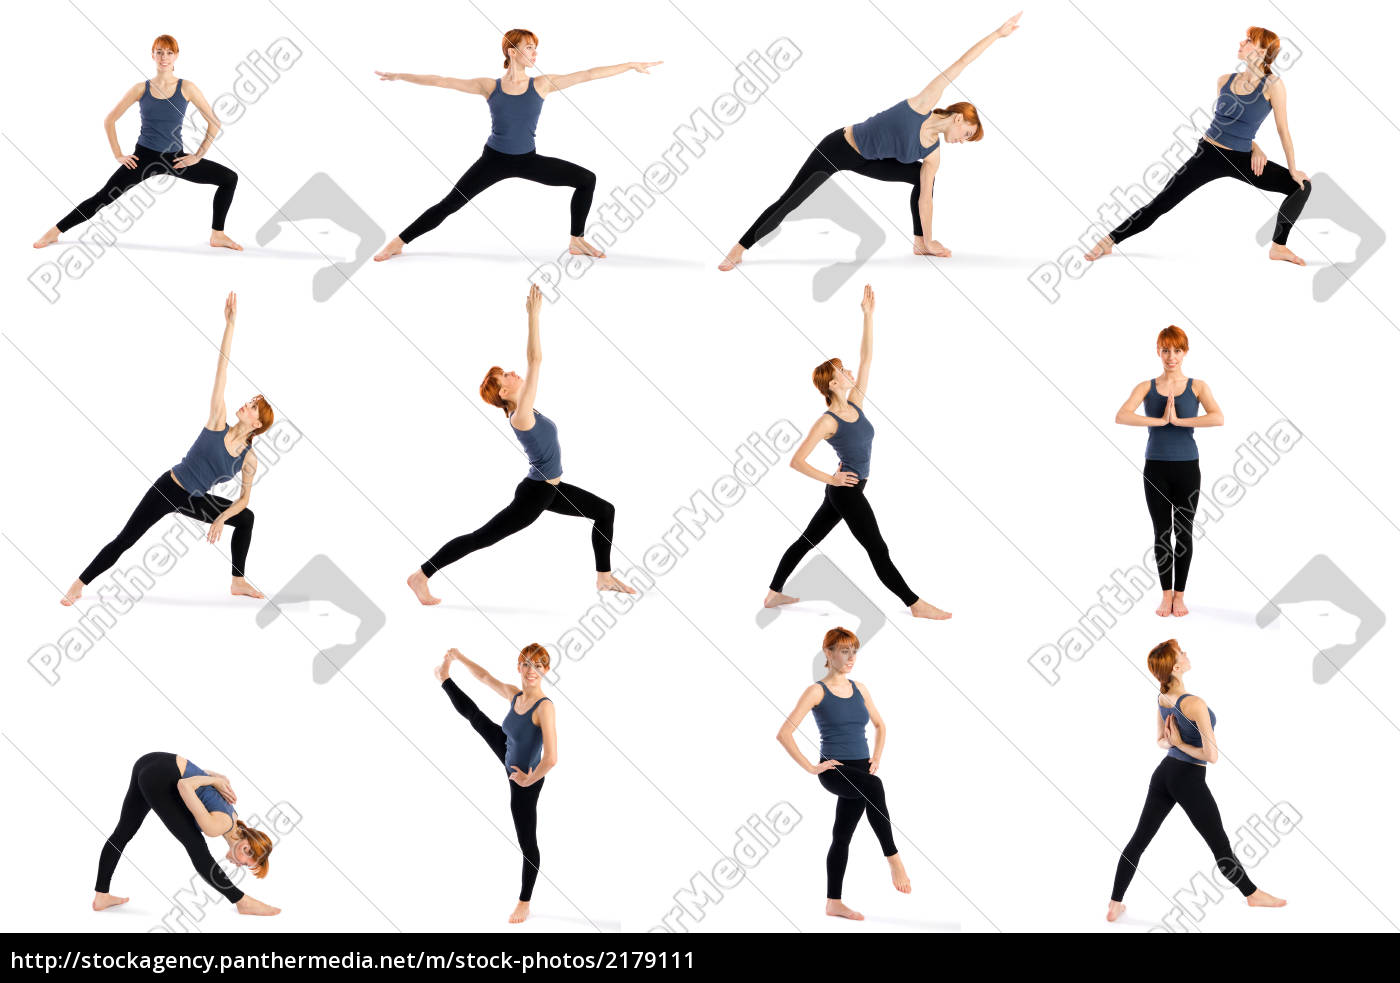 Fitness Woman In Various Standing Yoga Poses Stock Photo 2179111 Panthermedia Stock Agency